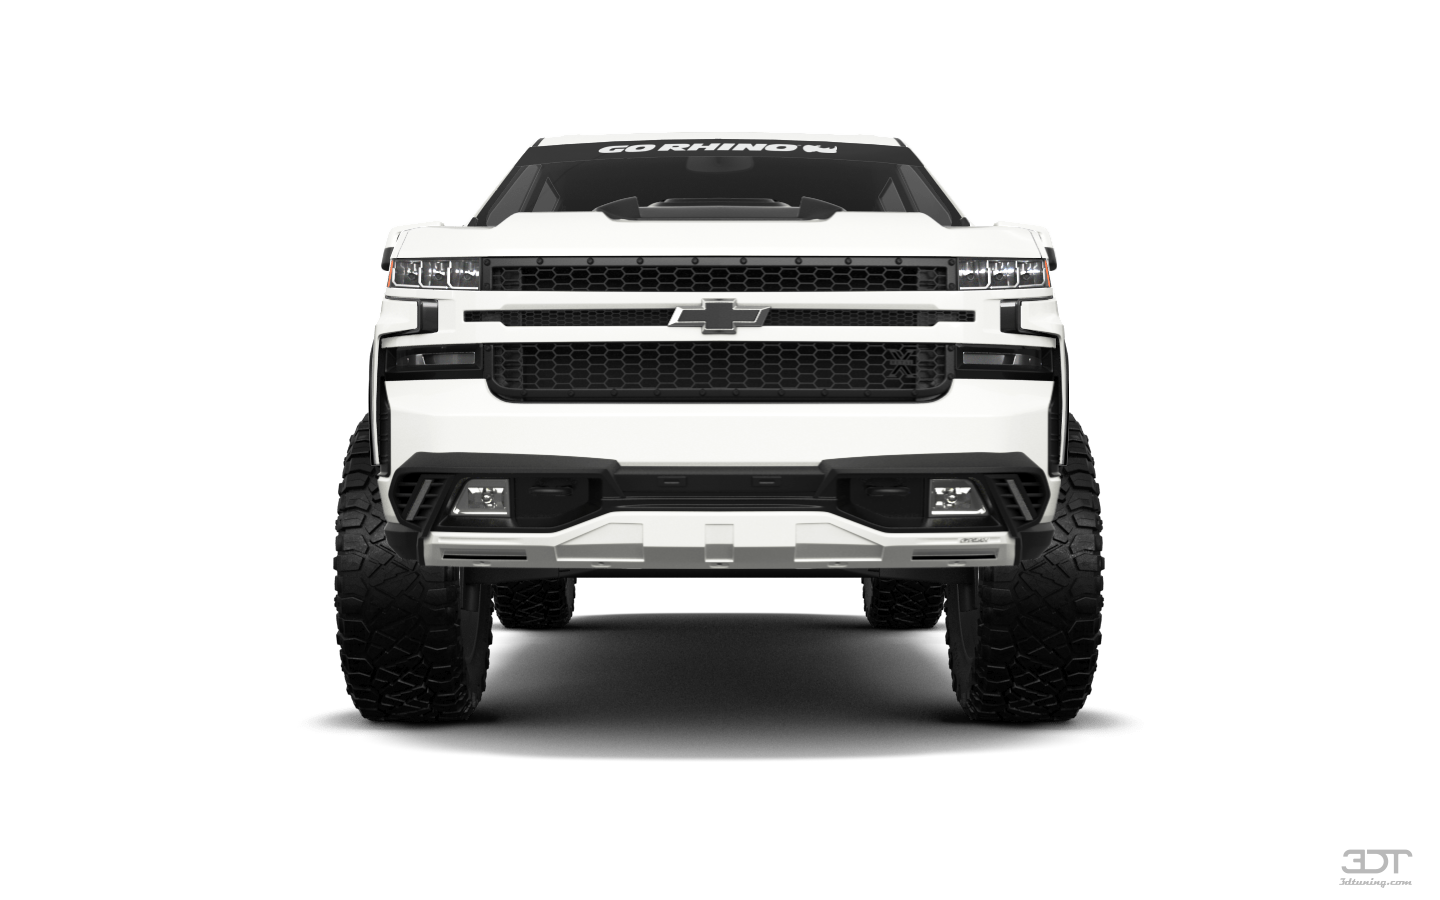 Chevrolet Silverado 1500 4 Door pickup truck 2019